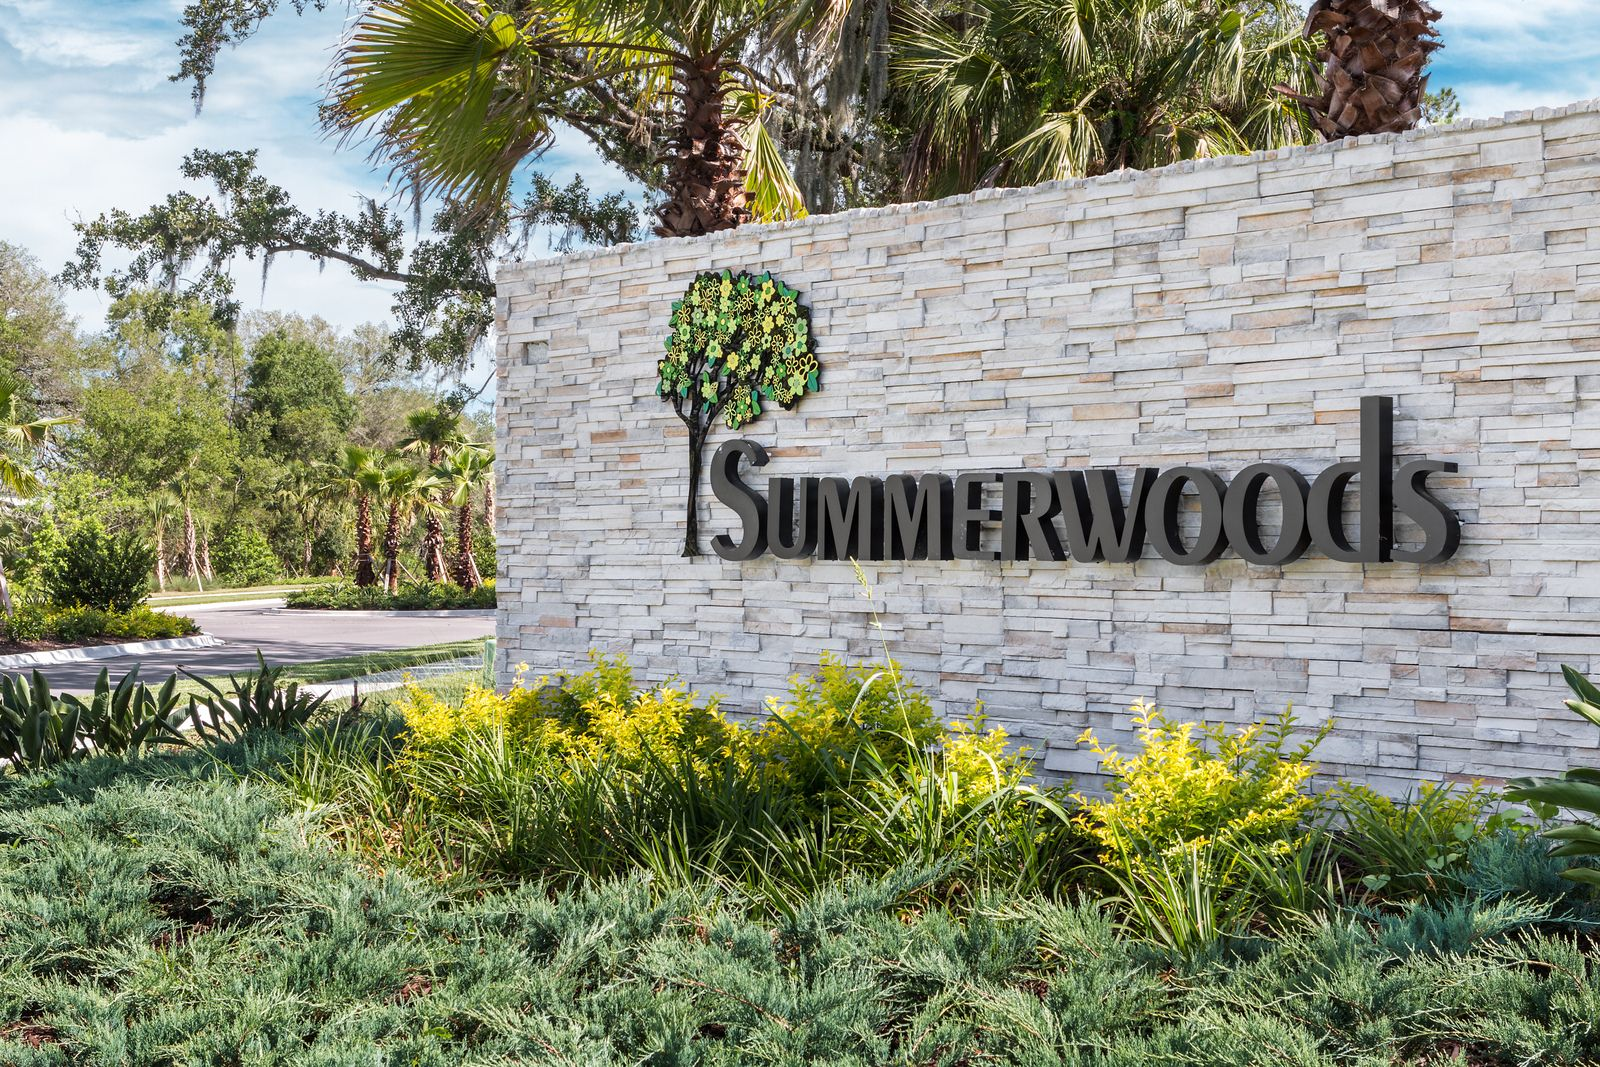 Welcome Home to Summerwoods, Parrish Florida:Due to extremely high demand, we havea limited availability of homesites available each month.Schedule an appointment today to make one yours.